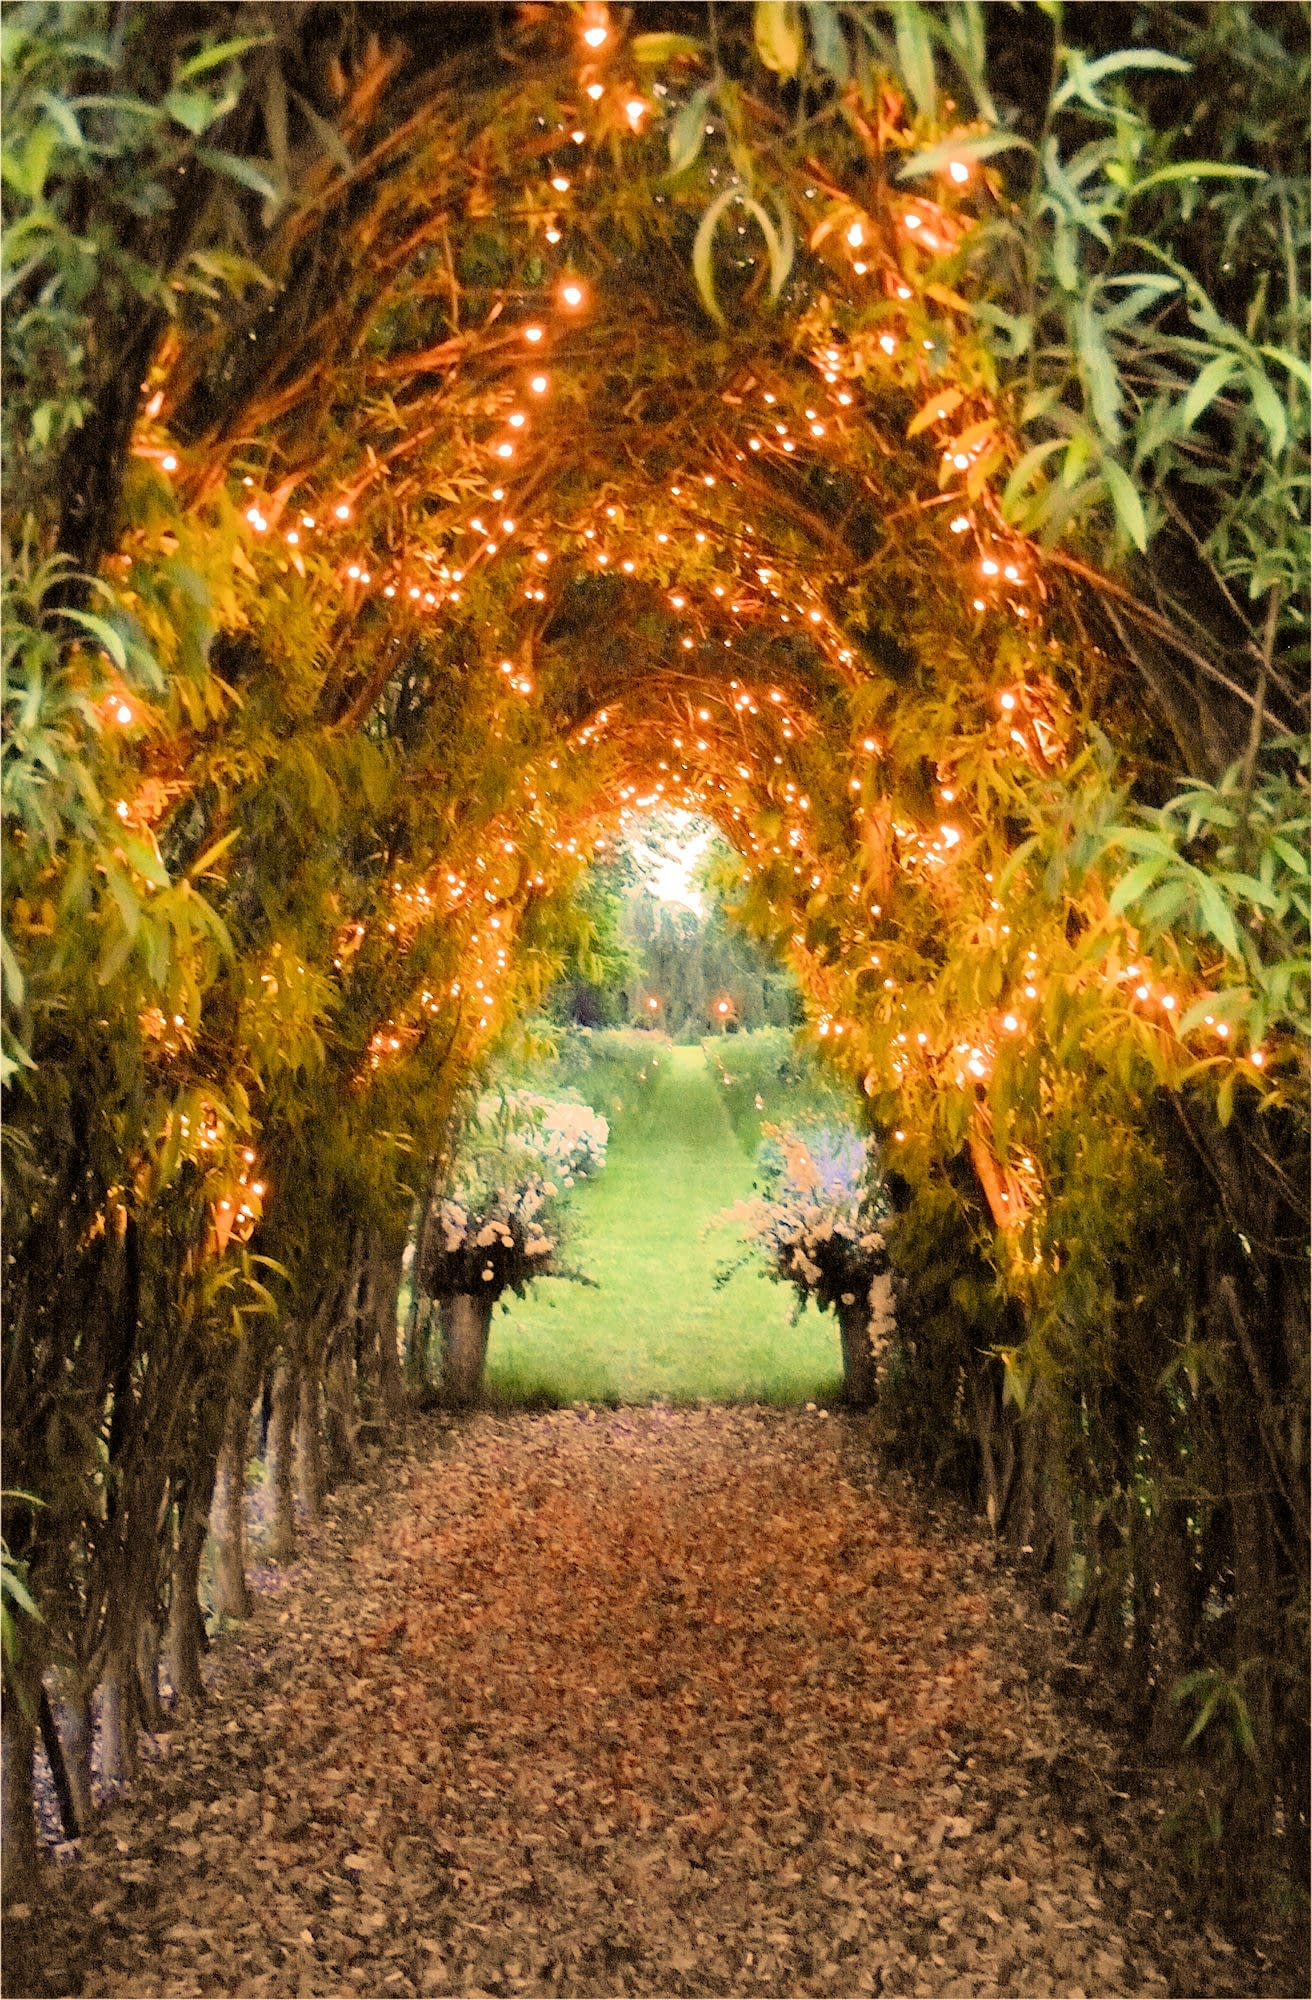 Fairy lights in bushes to create an illuminated walkway at Chaucer Barn, UK wedding venue